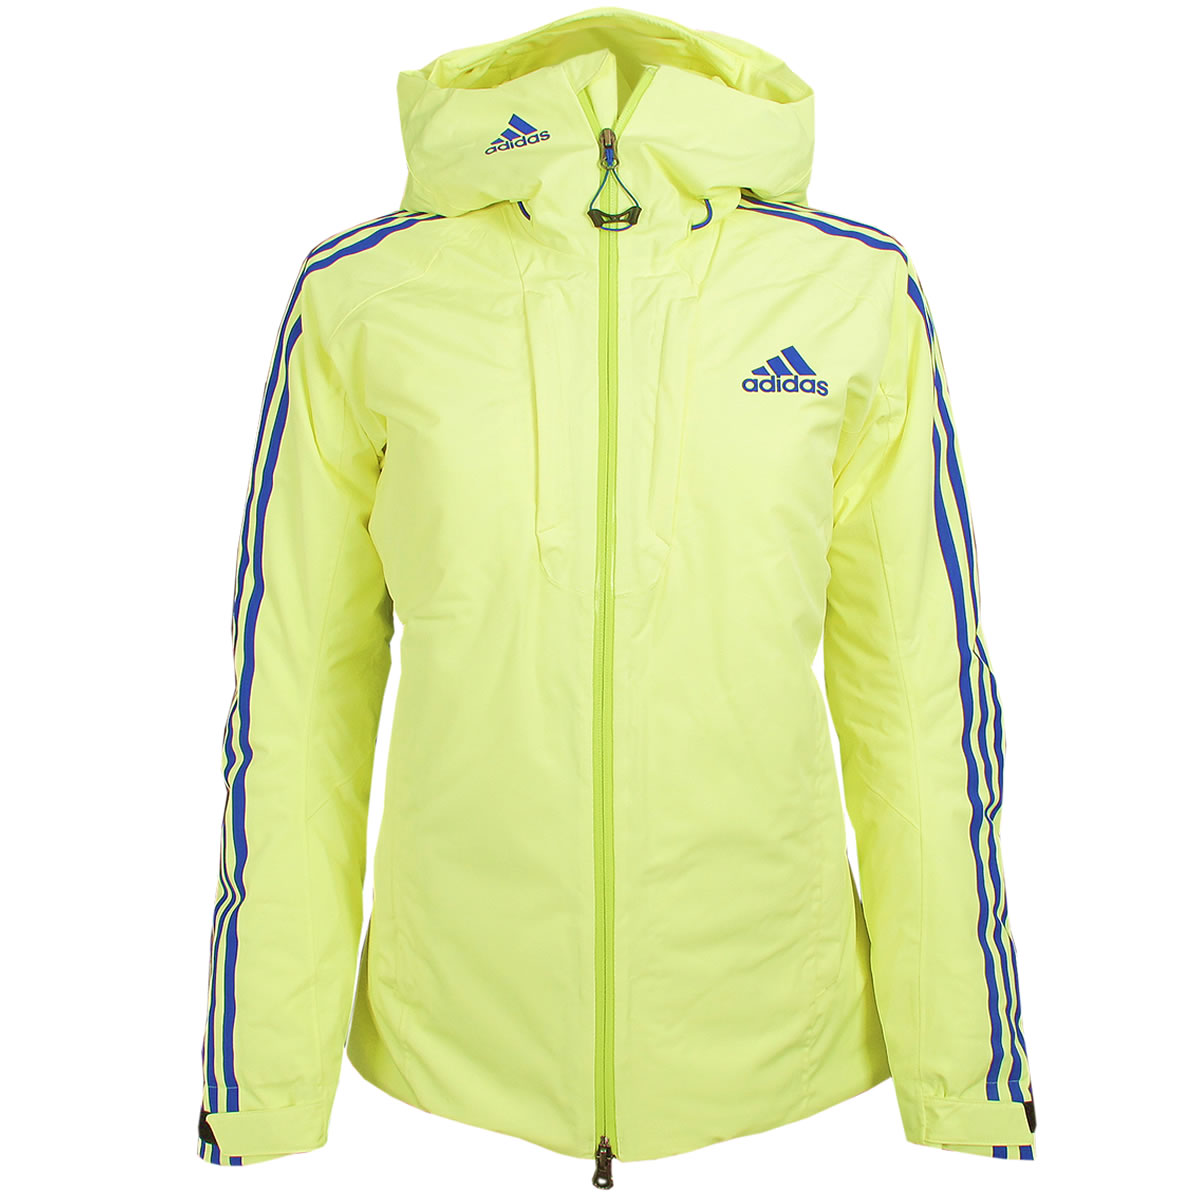 adidas Damen Cross Country Coach Jacke mit Kapuze